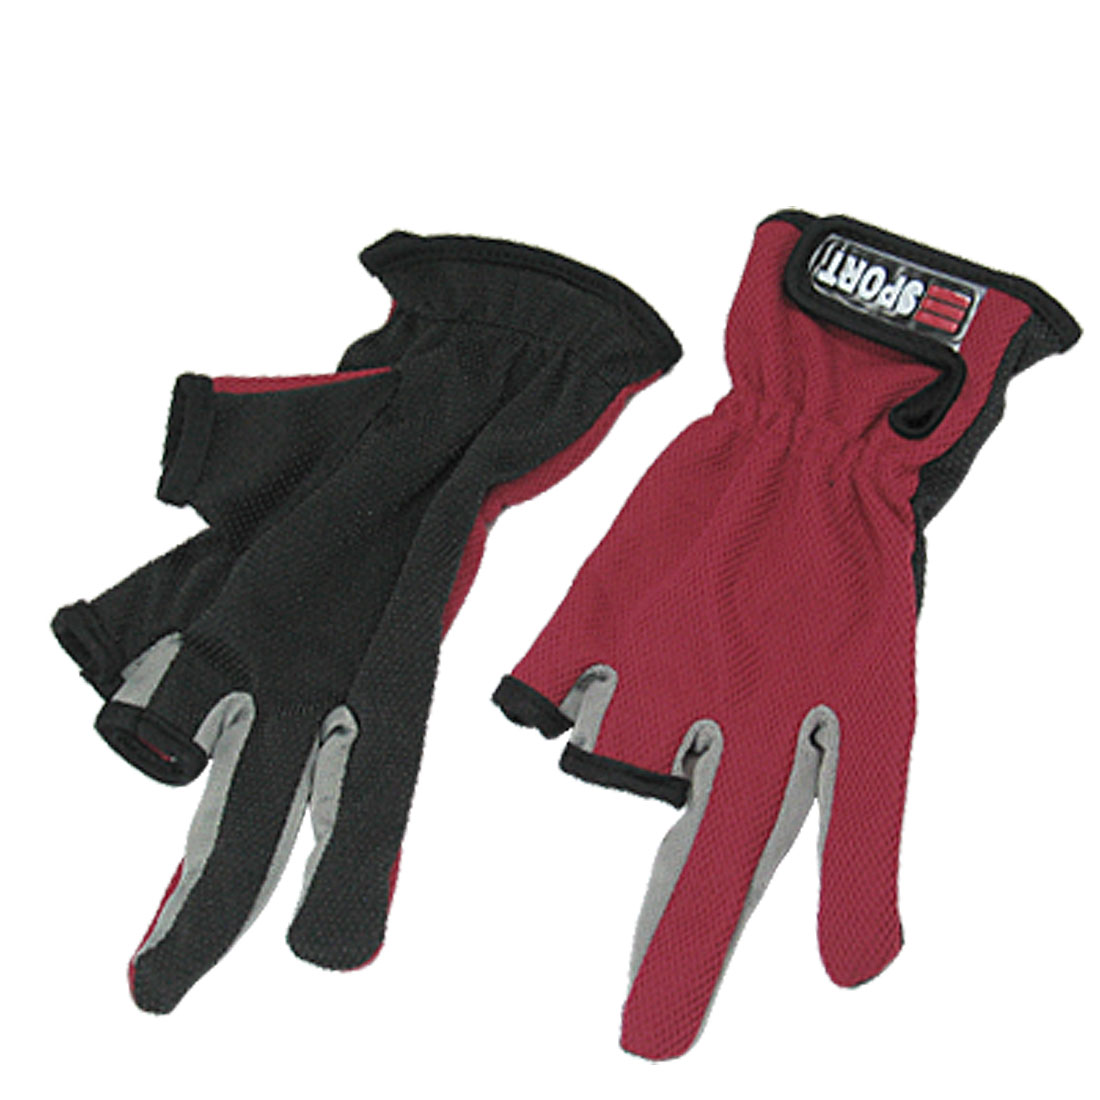 2 x Two Finger Fuchsia Black Nylon Nonslip Fishing Gloves